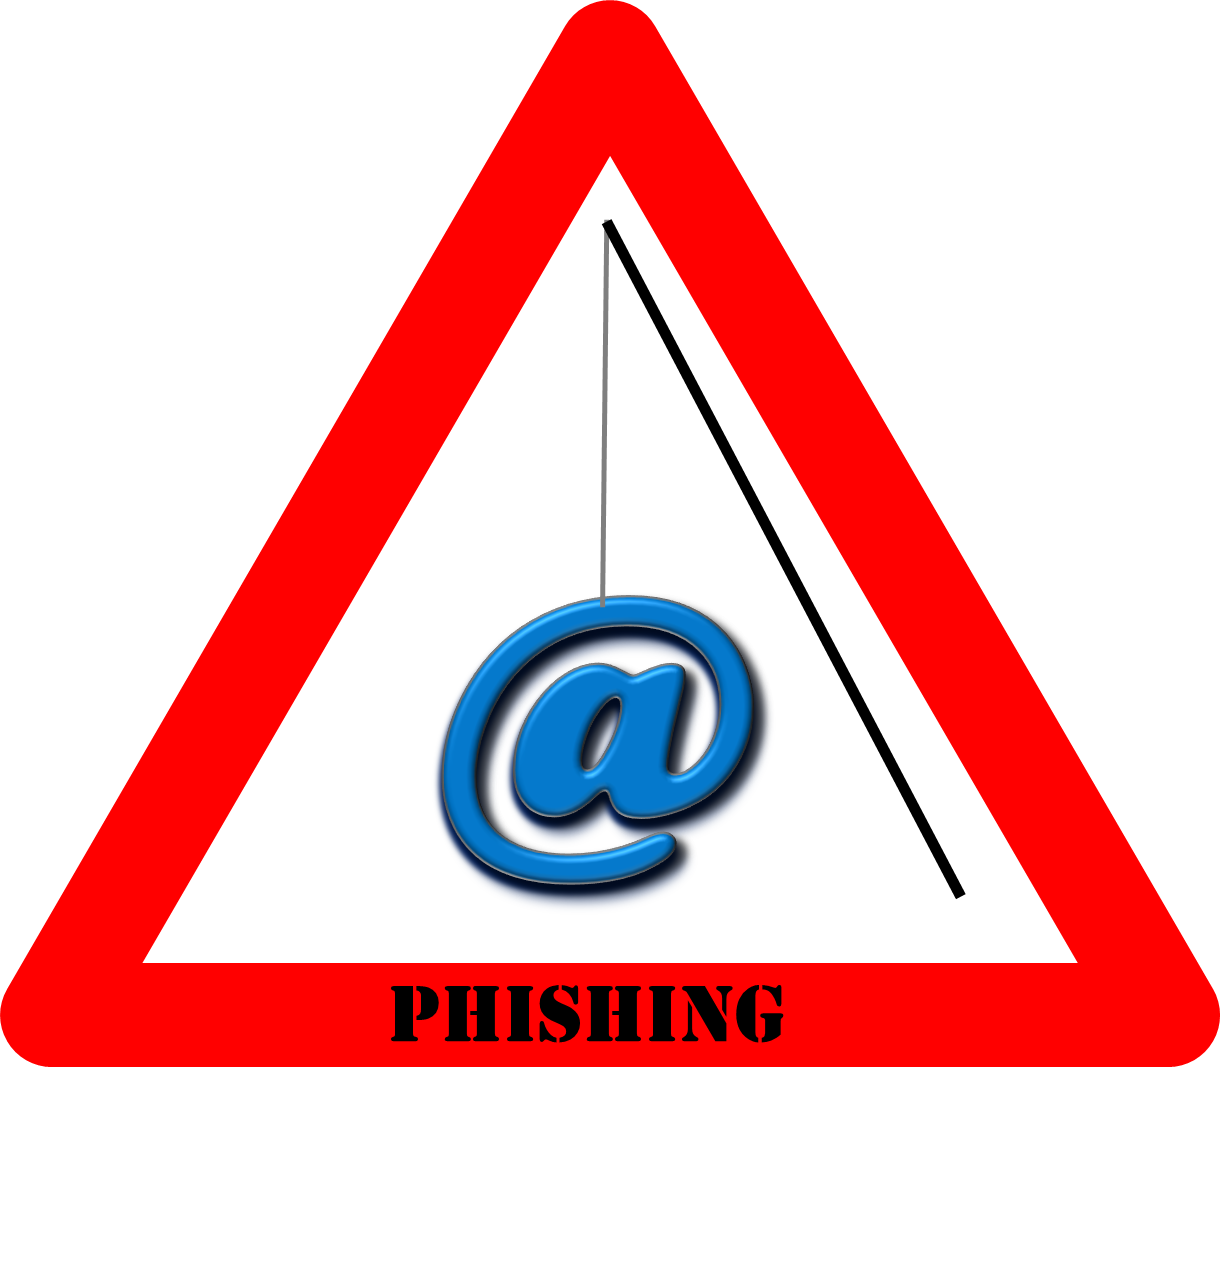 Warning Sign For Phishing